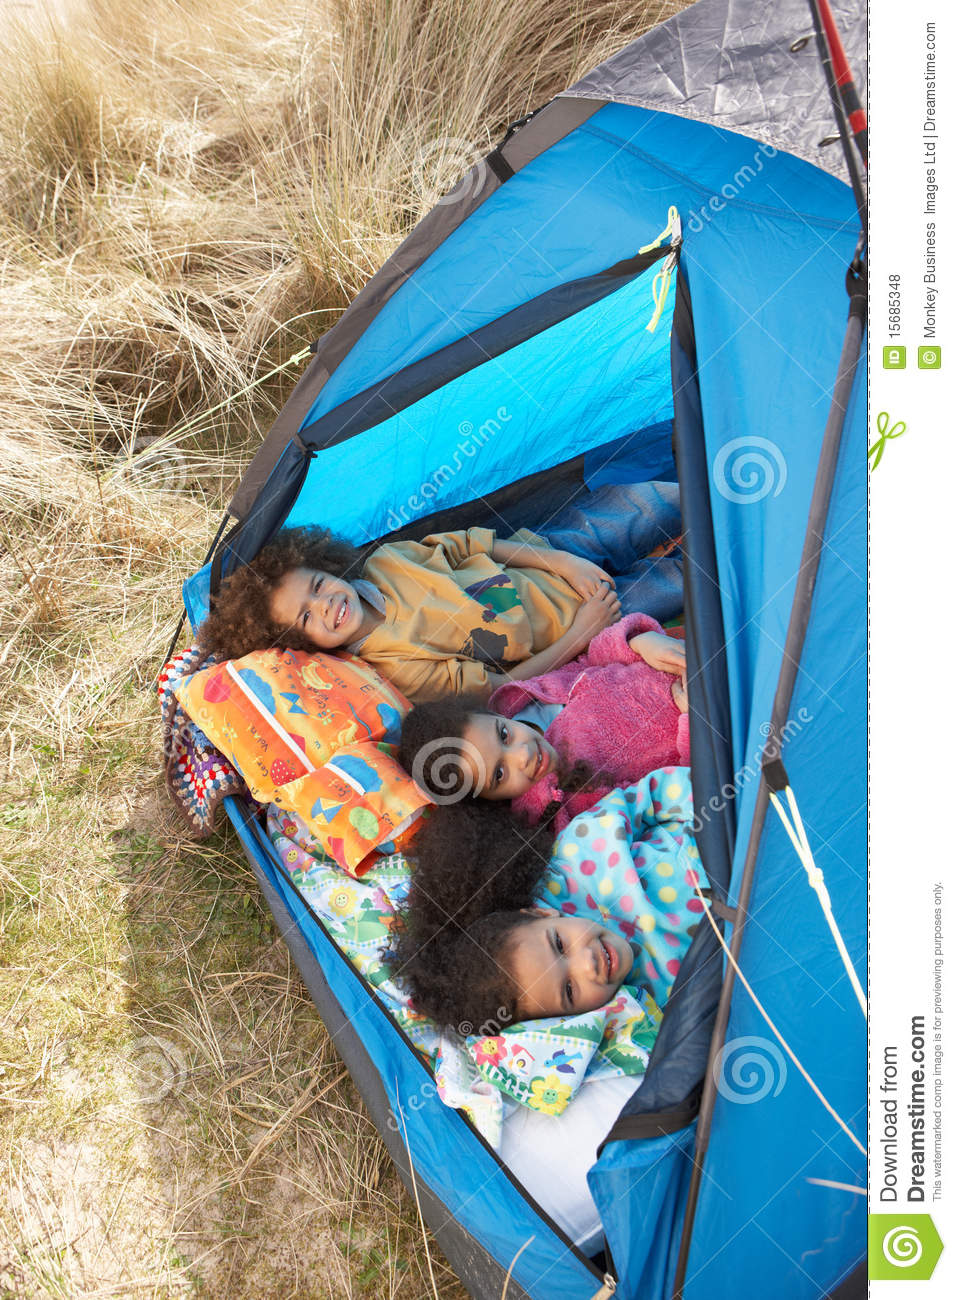 Fun Activities to Do When Camping